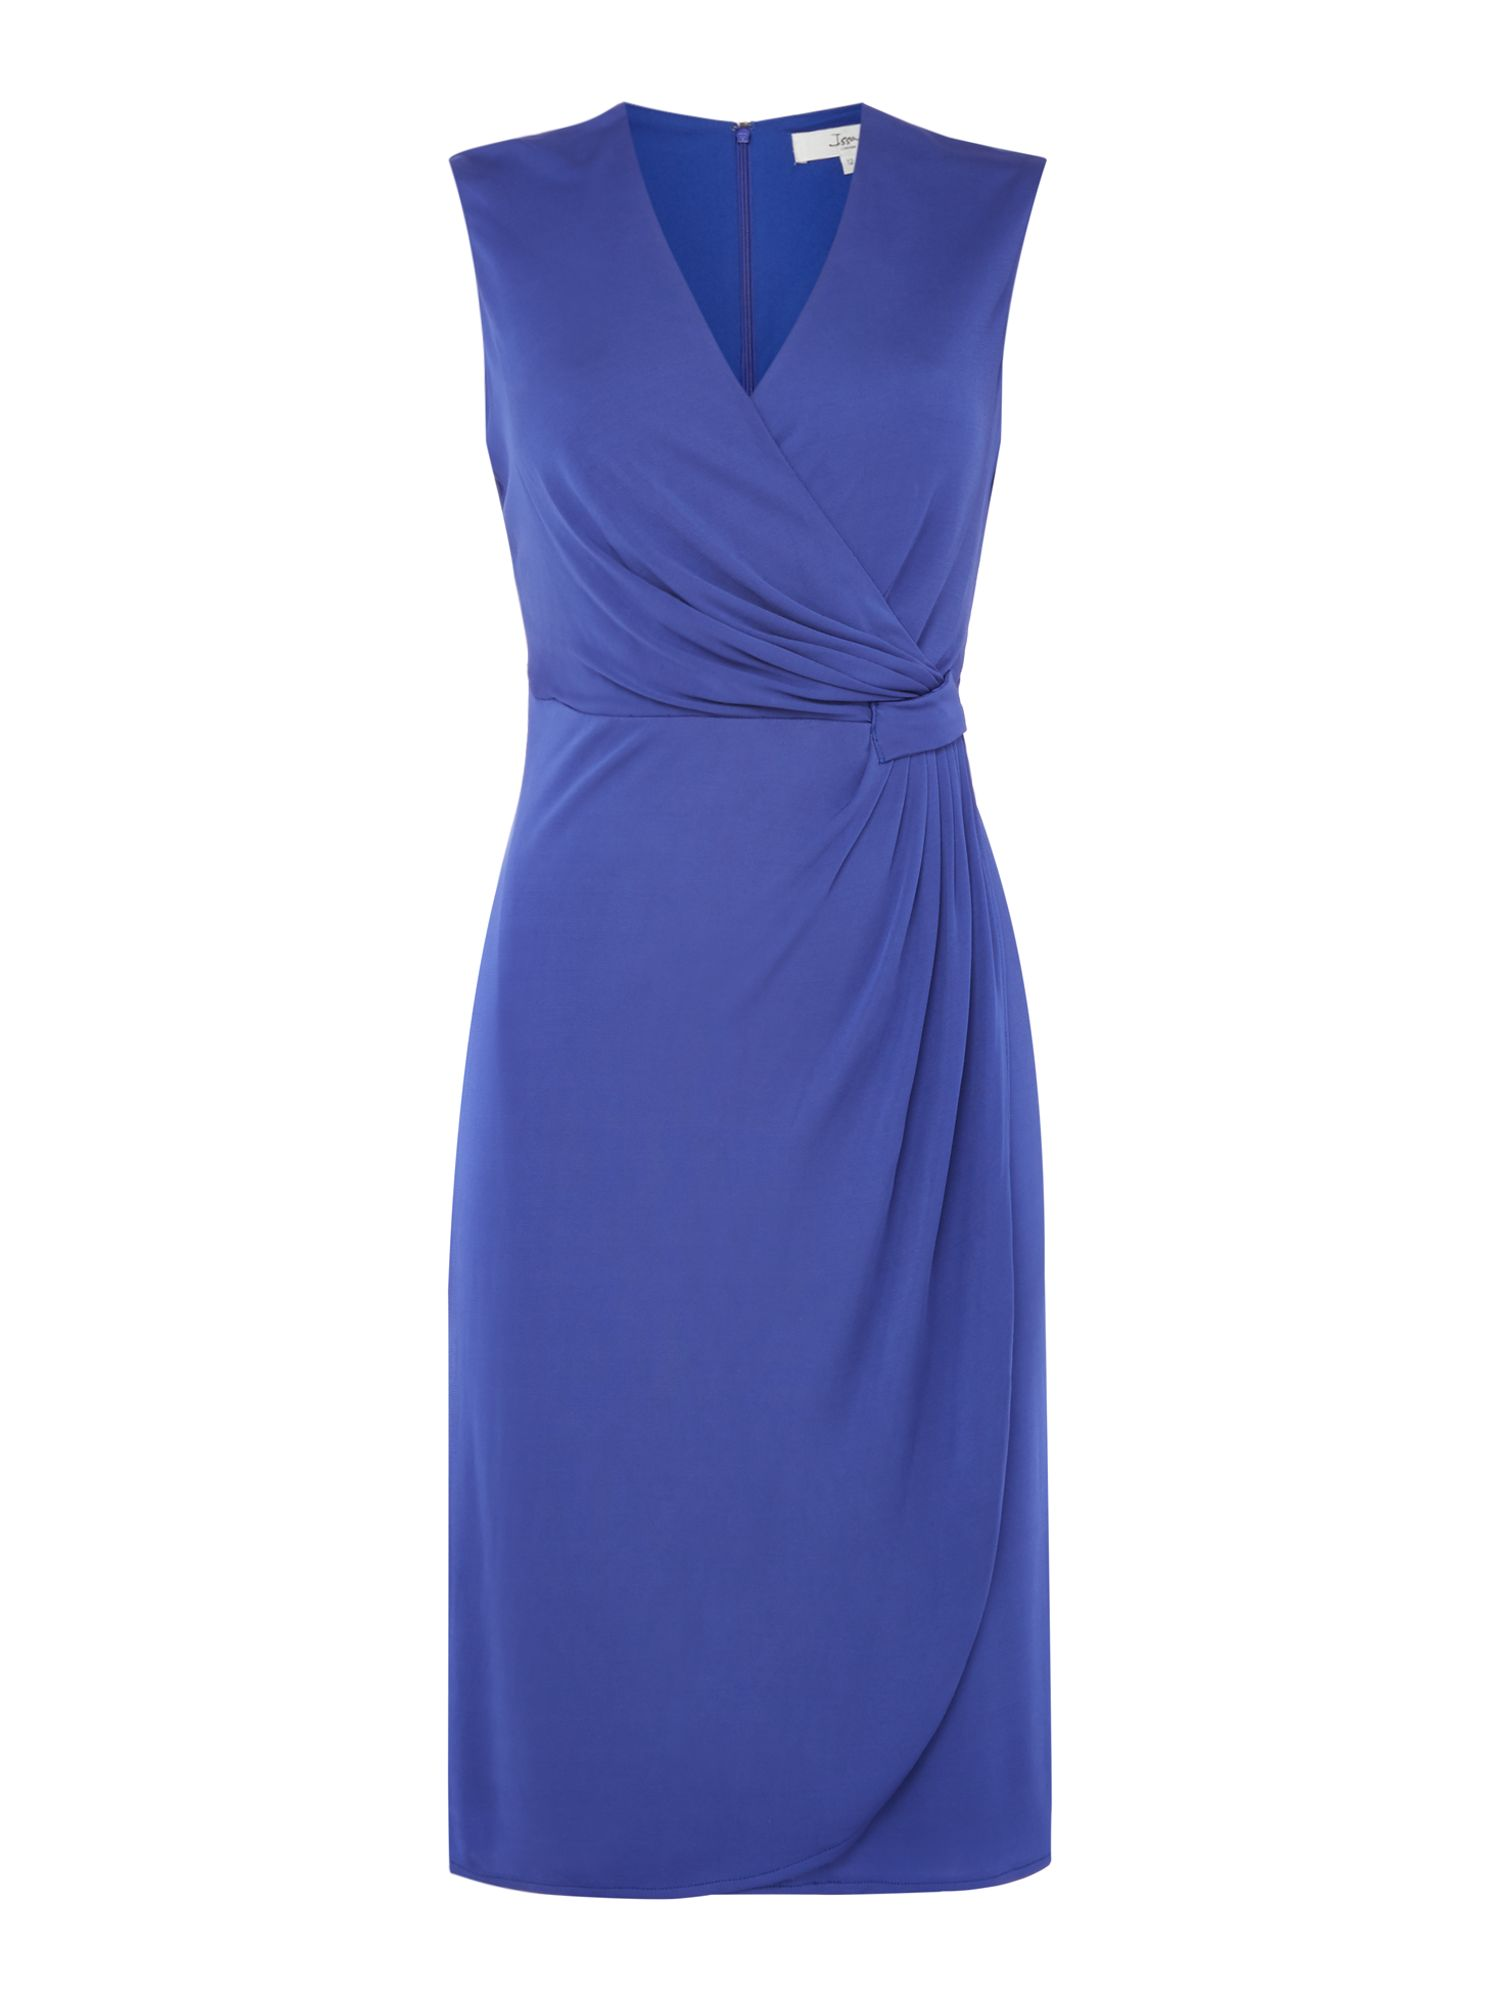 ISSA Charlotte Sleeveless Wrap Dress, Blue